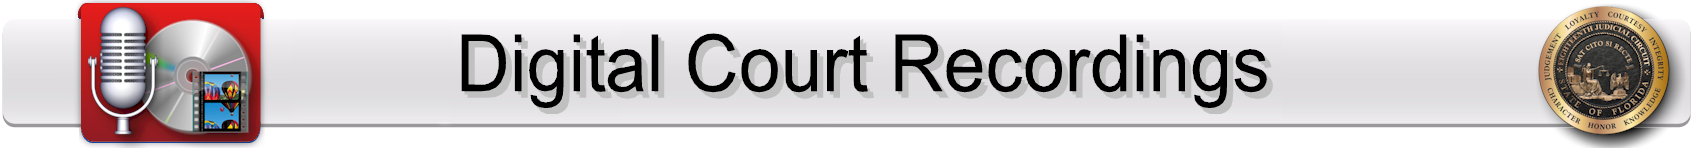 Digital Court Recording